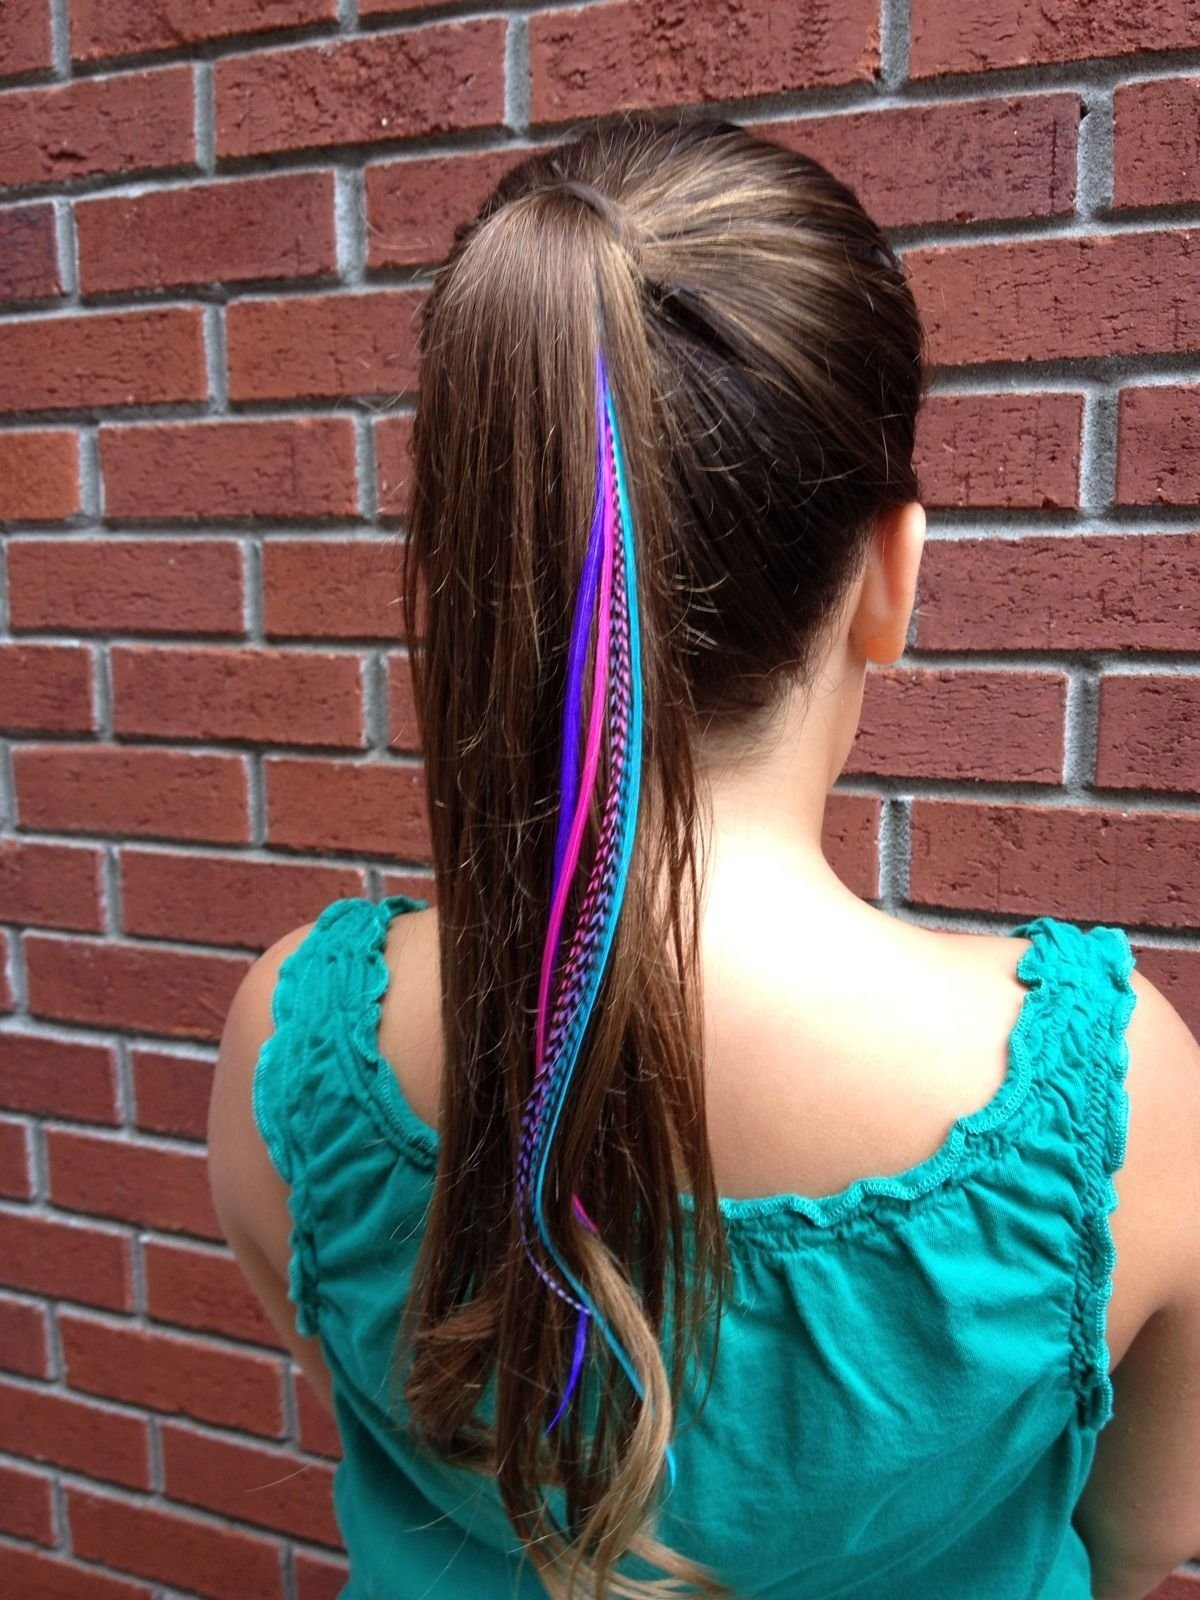 Feather Hair Extensions, 100% Real Rooster Feathers, Long Pink, Purple, Blue Colors, 20 Feathers with Bonus FREE Beads and Loop Tool Kit by Feather Lily (Image #6)